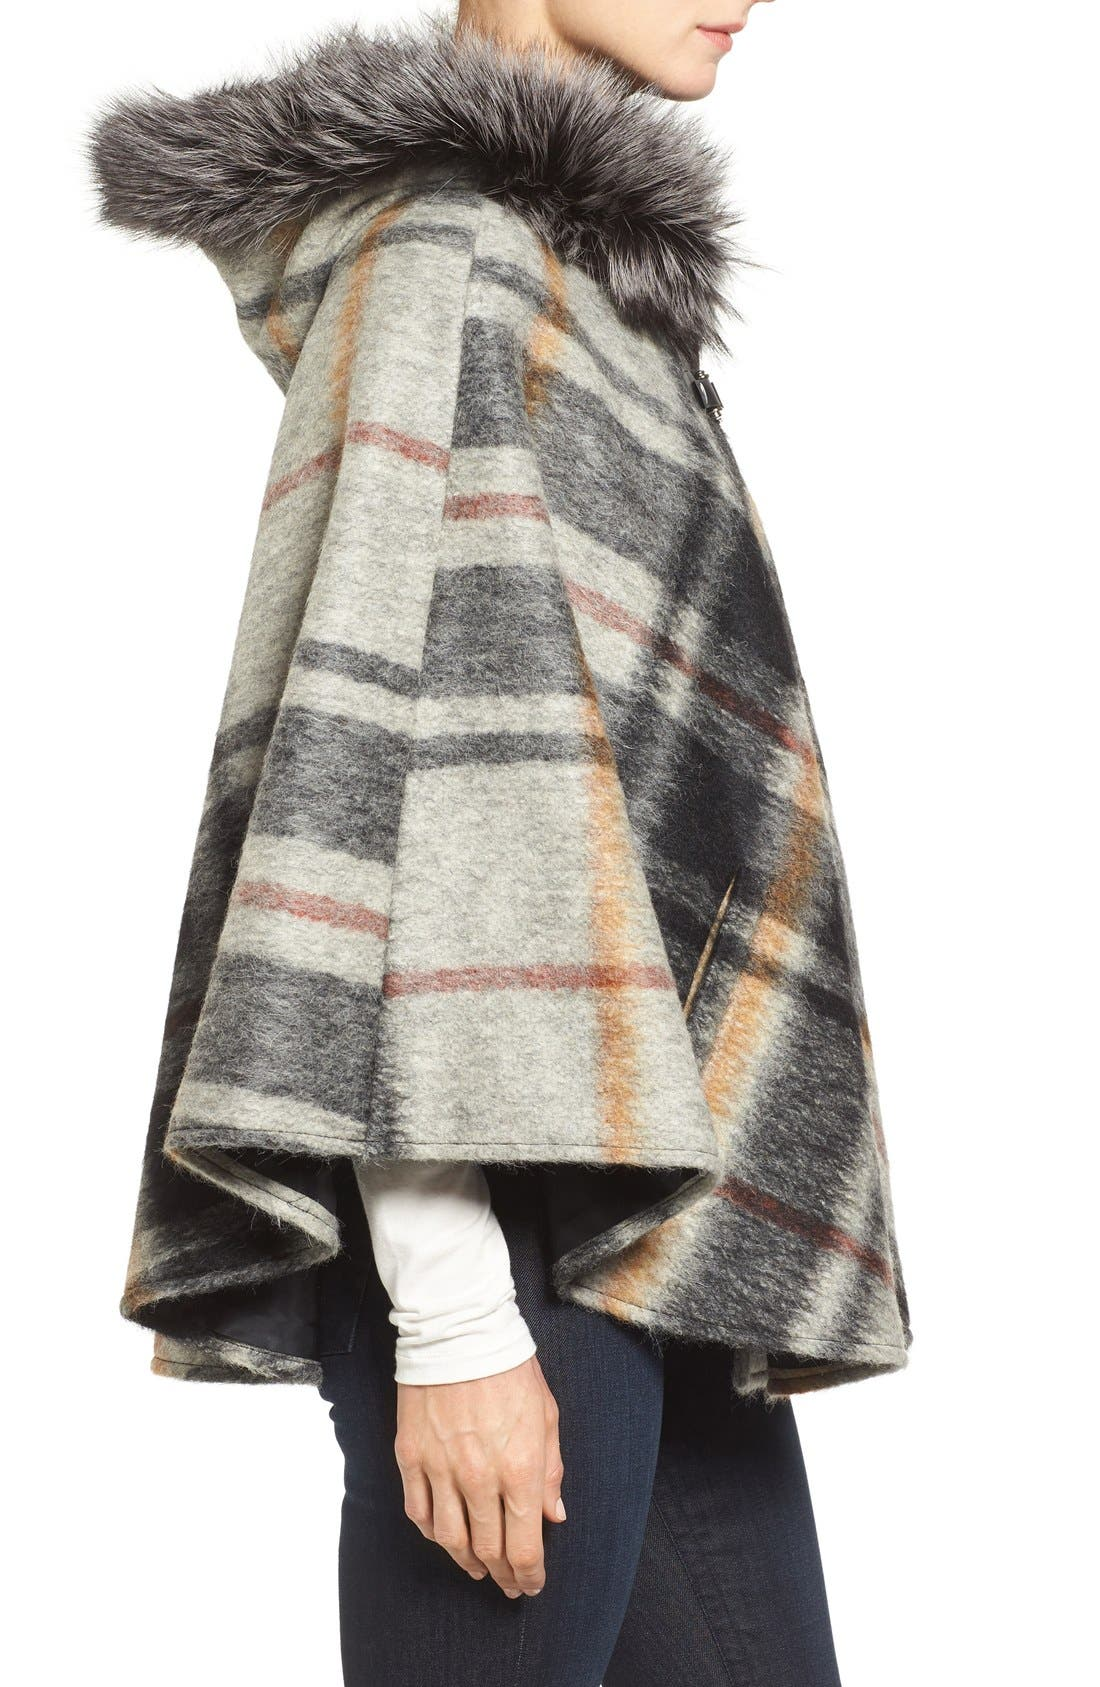 HISO,                             Hide Society Hooded Plaid Cape with Genuine Fox Fur Trim,                             Alternate thumbnail 2, color,                             020